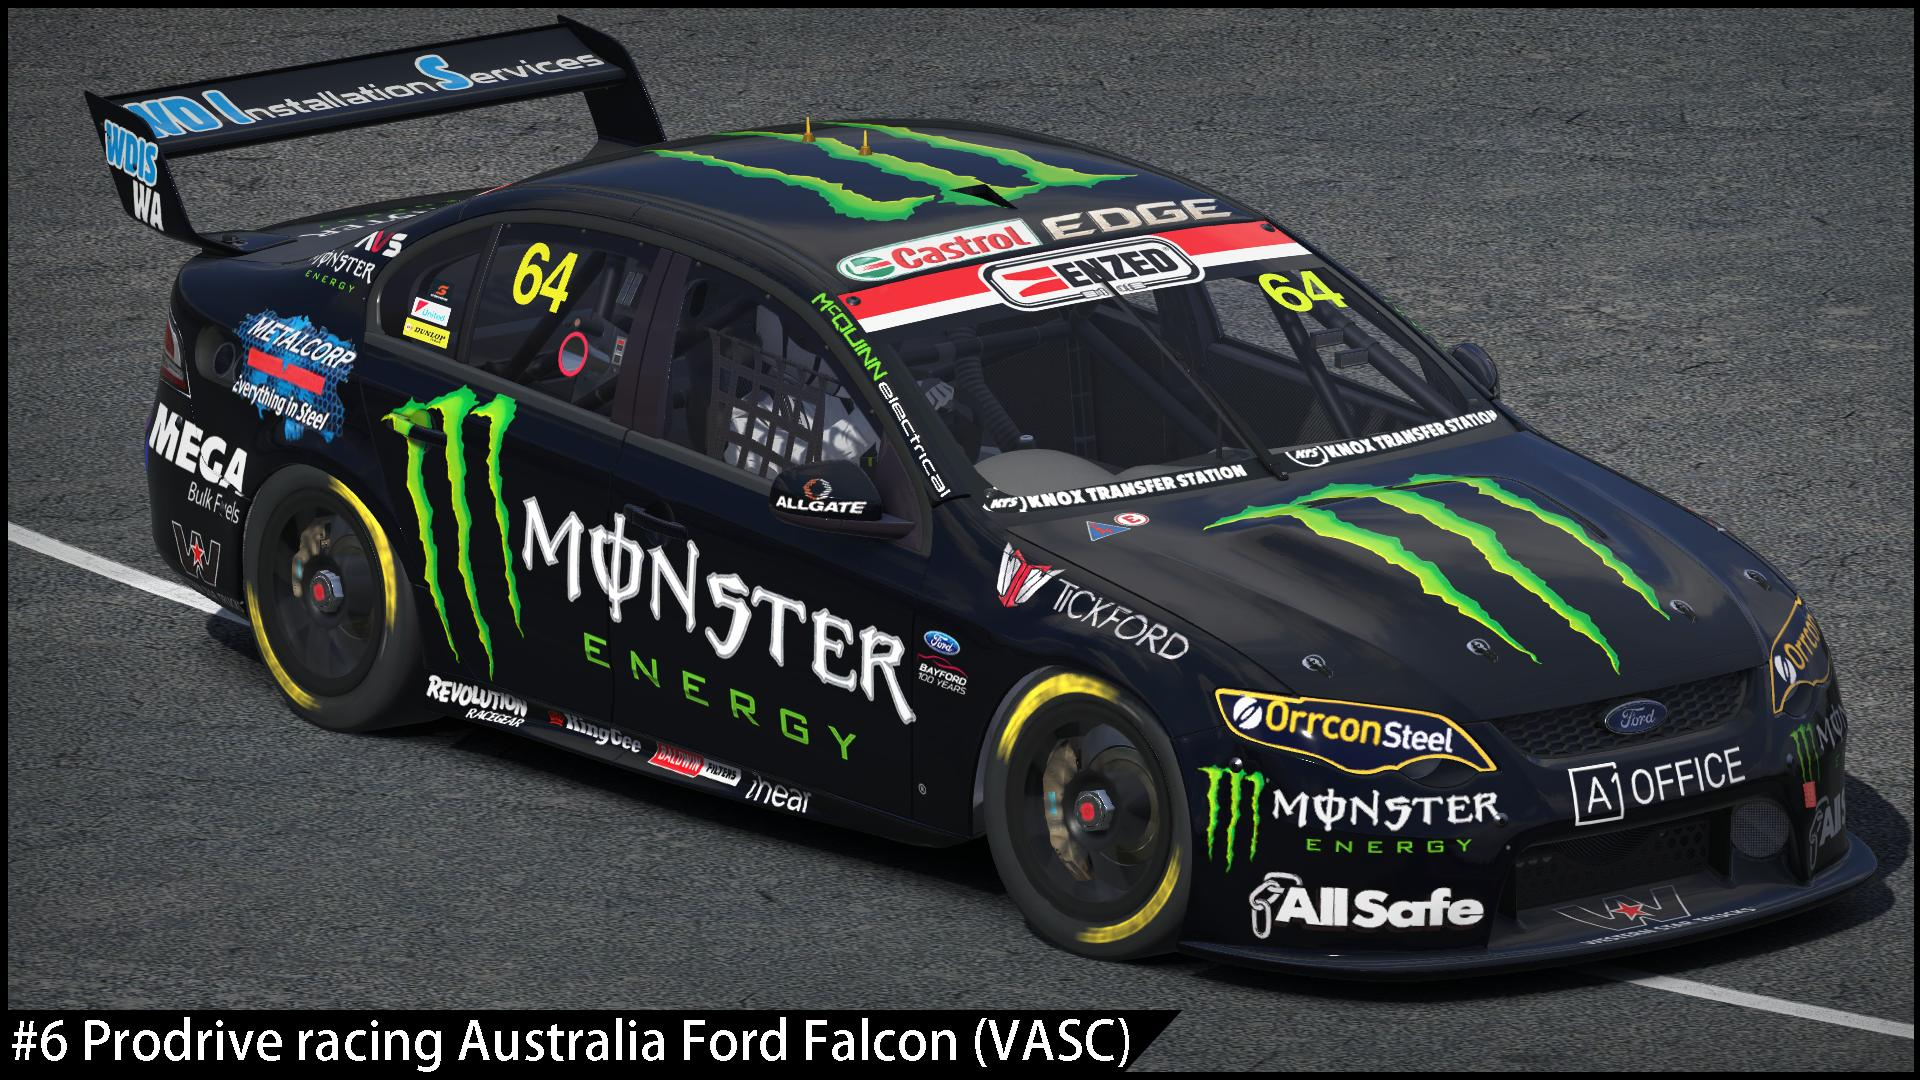 How To Get My Car Sponsored By Monster Energy